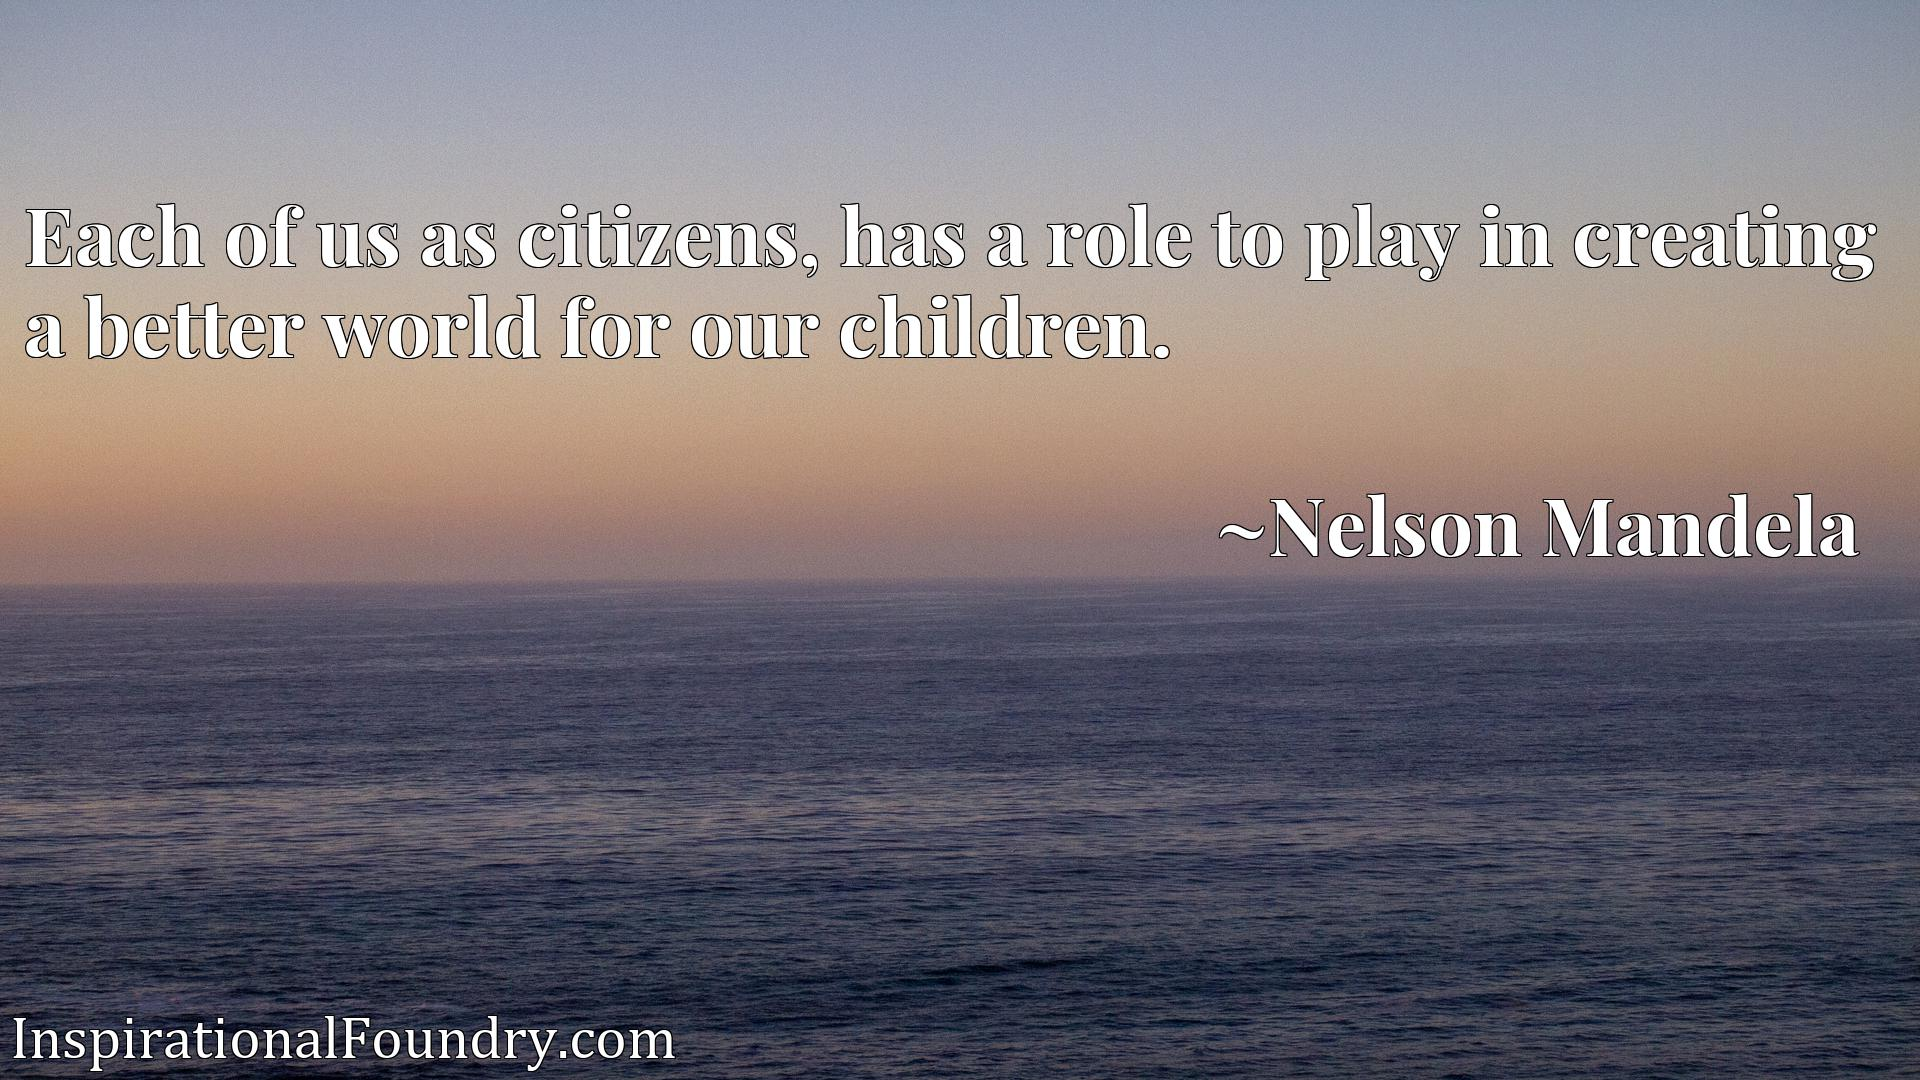 Quote Picture :Each of us as citizens, has a role to play in creating a better world for our children.